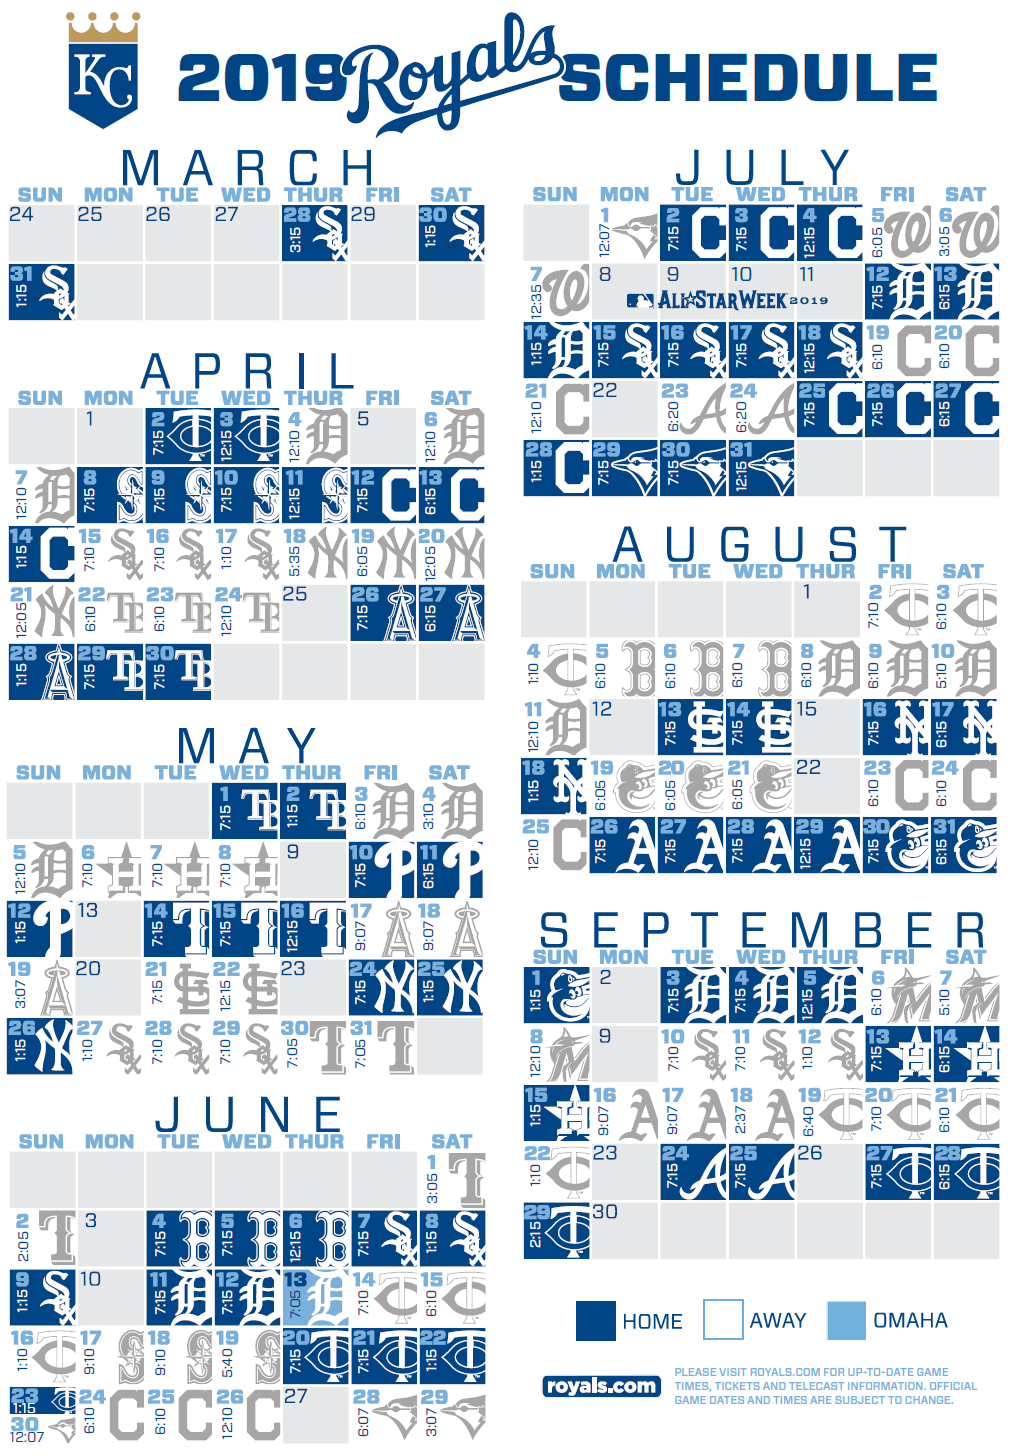 Playful image regarding royals schedule printable